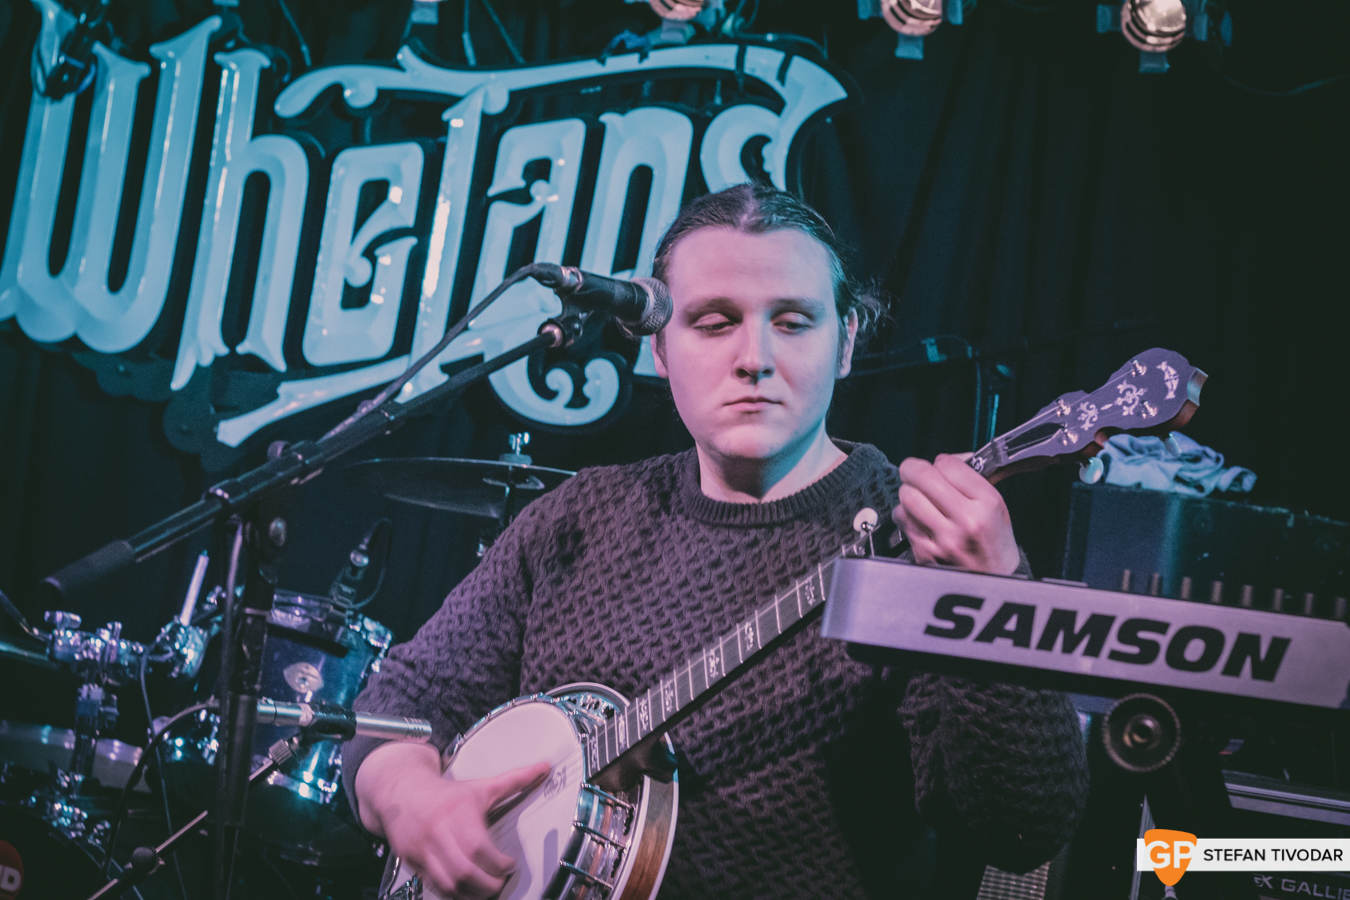 Alfi Whelans Ones to Watch Winter 2019 Day Whelans Ones to Watch Winter 2019 Day 53